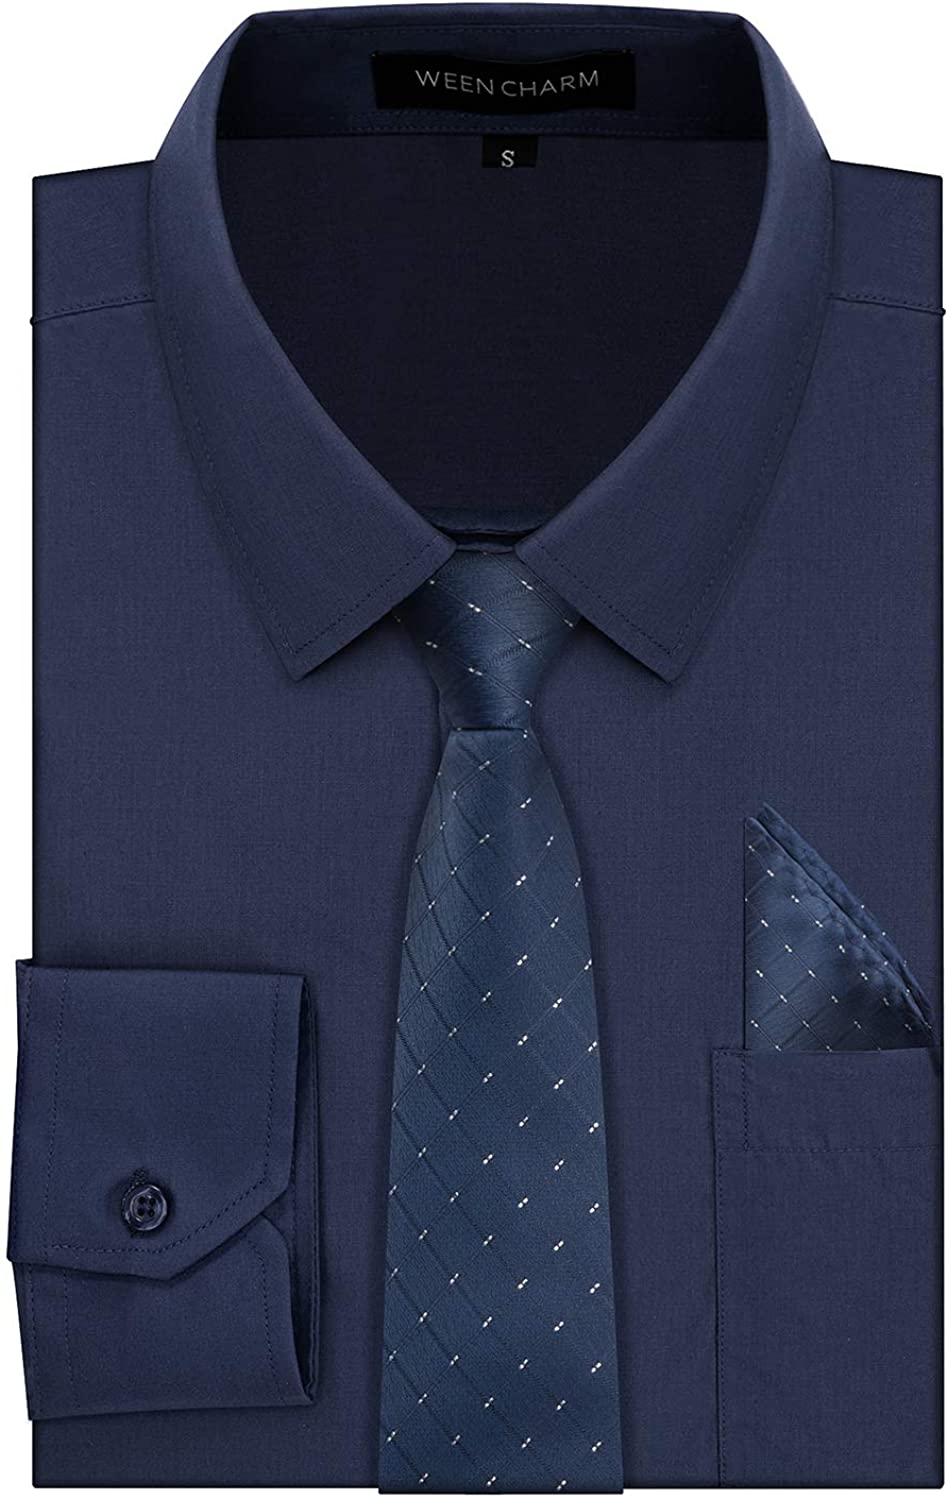 WEEN CHARM Mens Dress Shirts Regular Fit Button Down Tuxedo Shirts with Matching Tie and Handkerchief